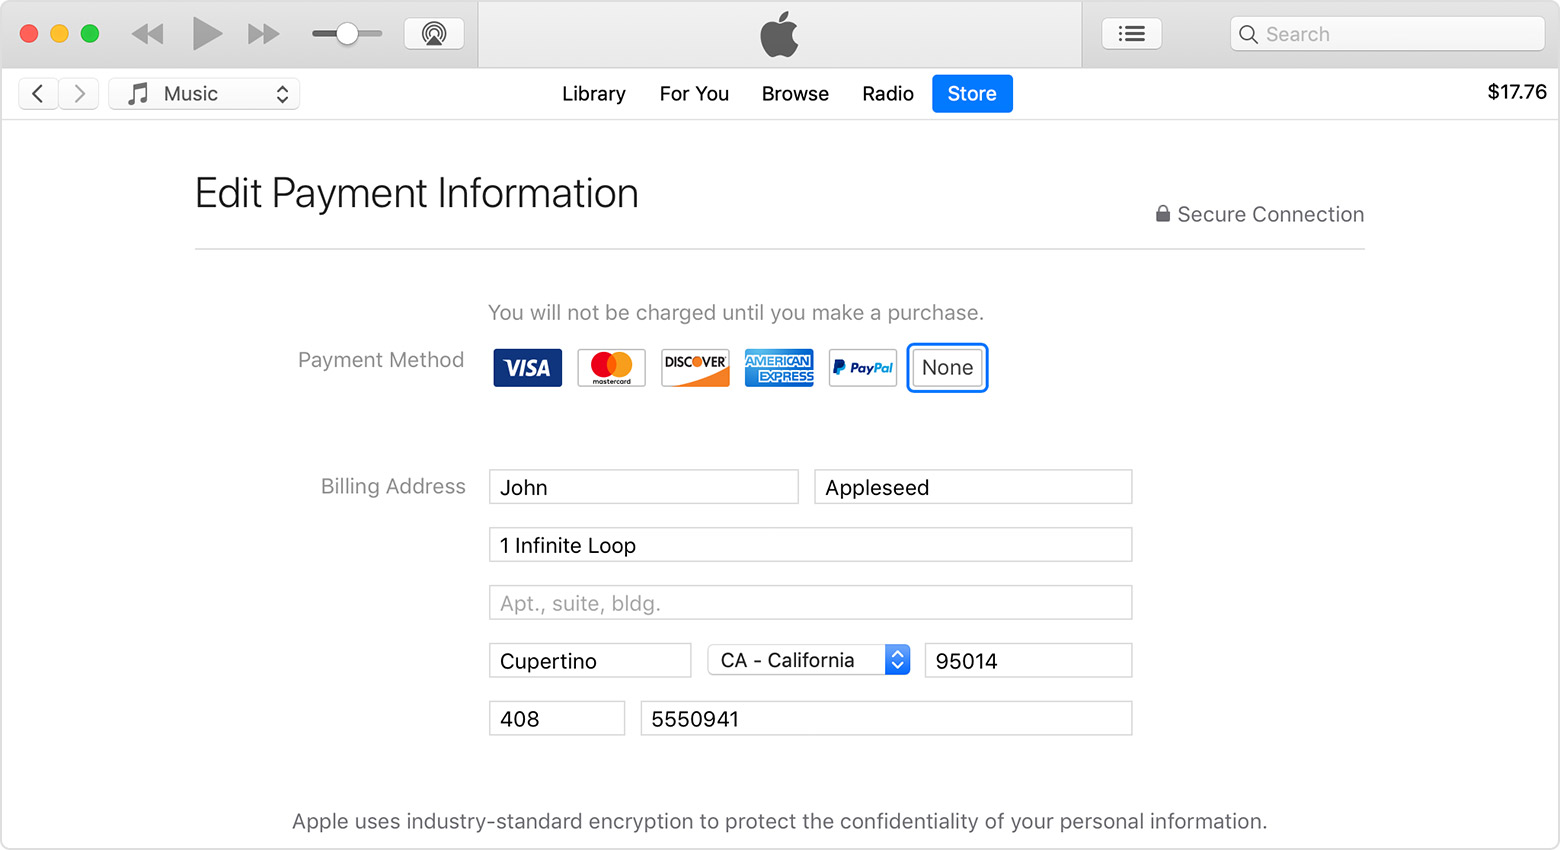 iTunes open to the Edit Payment Information screen in Account Settings. None is selected as the payment method.